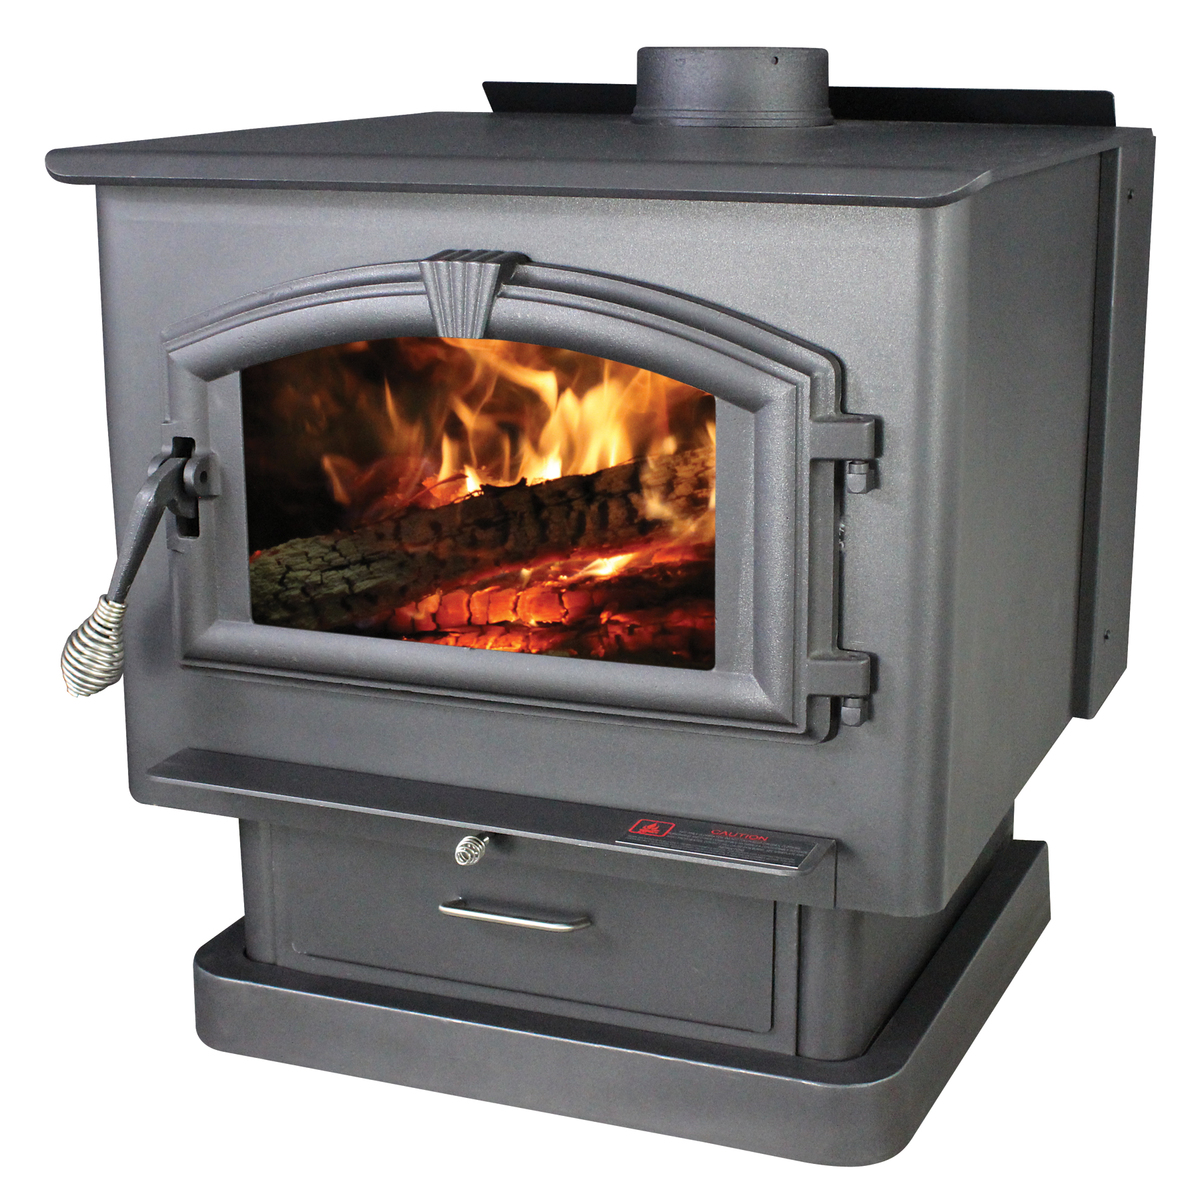 3000 Sq Ft Epa Certified Wood Stove With Blower Us Stove Company